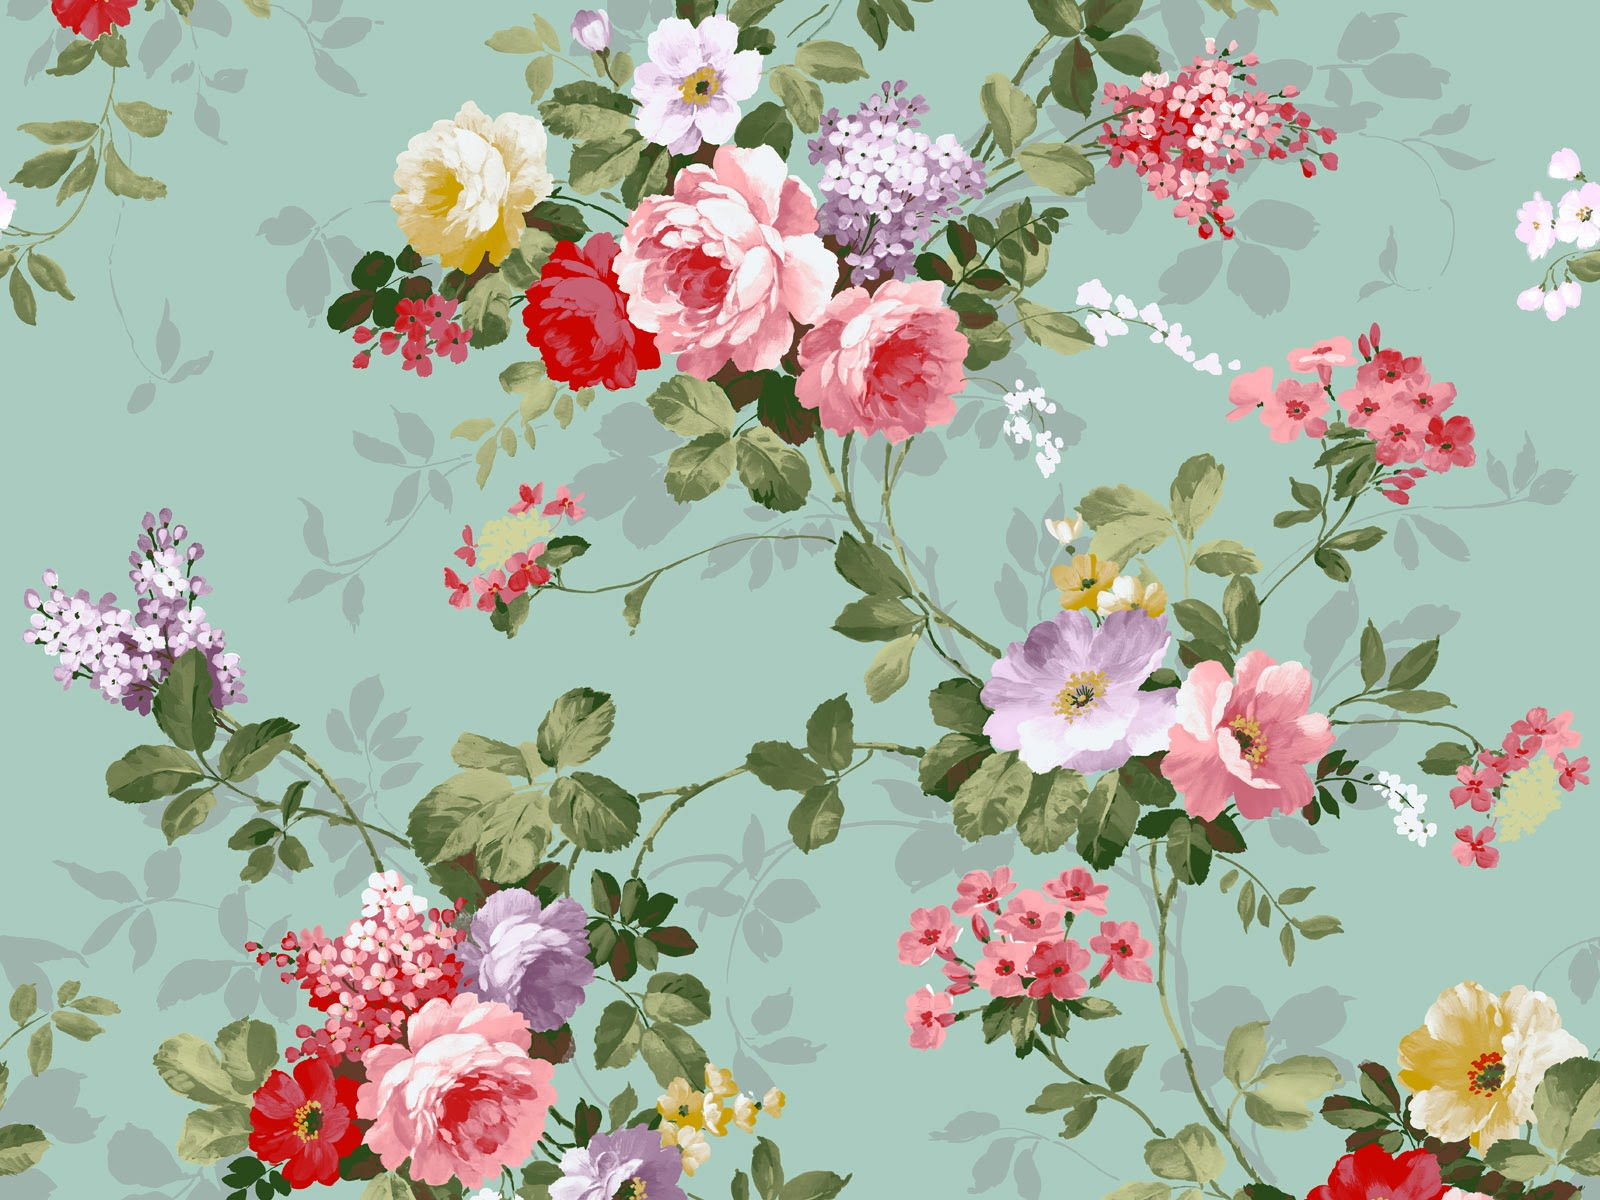 Download 15 Floral Vintage Wallpapers 1600x1200